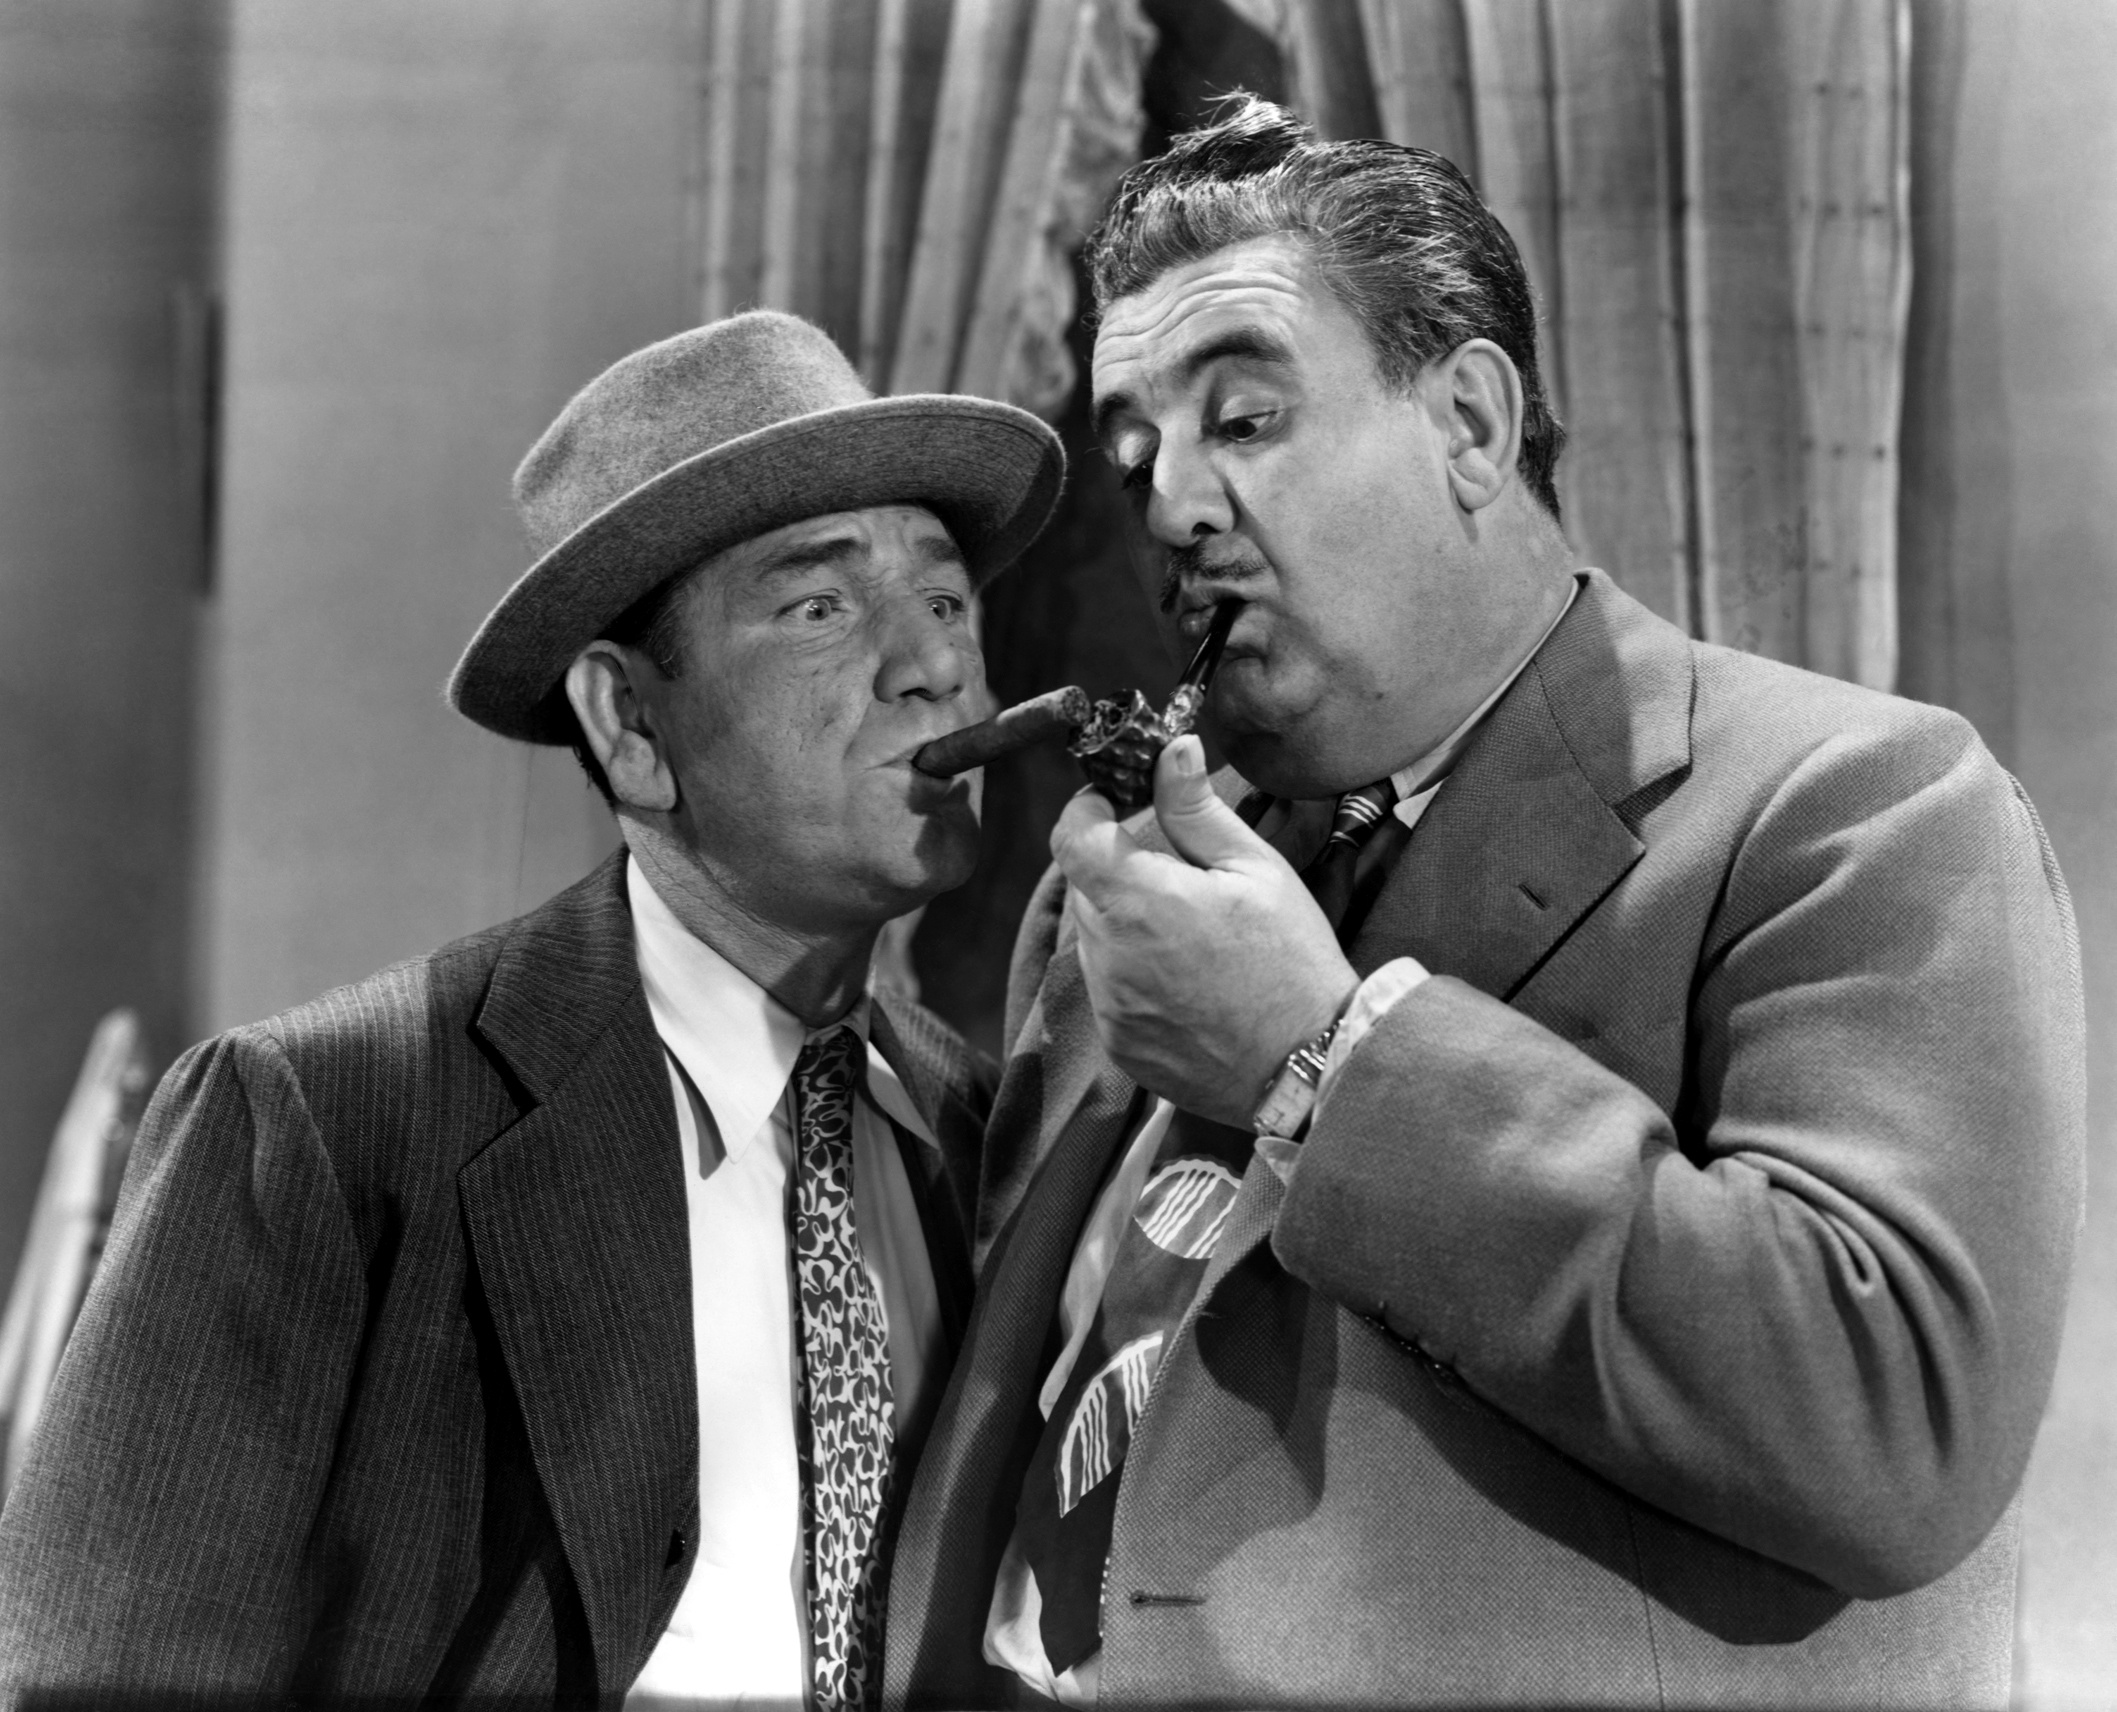 Billy Gilbert With Shemp Howard (L).